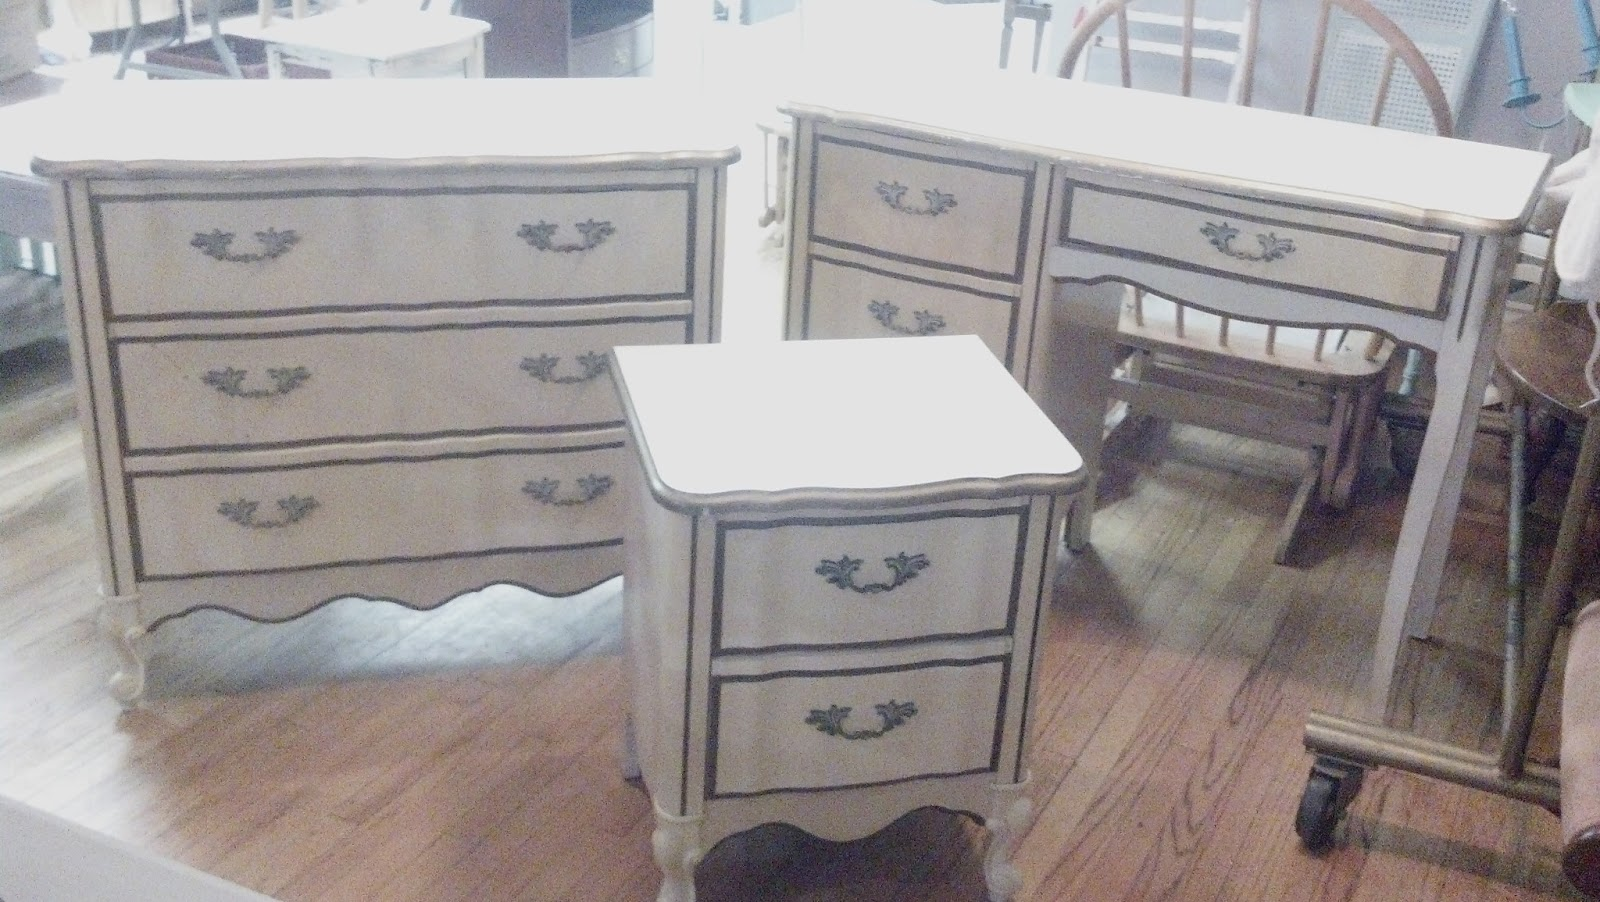 furniture to a friend central nj craigslist for sale